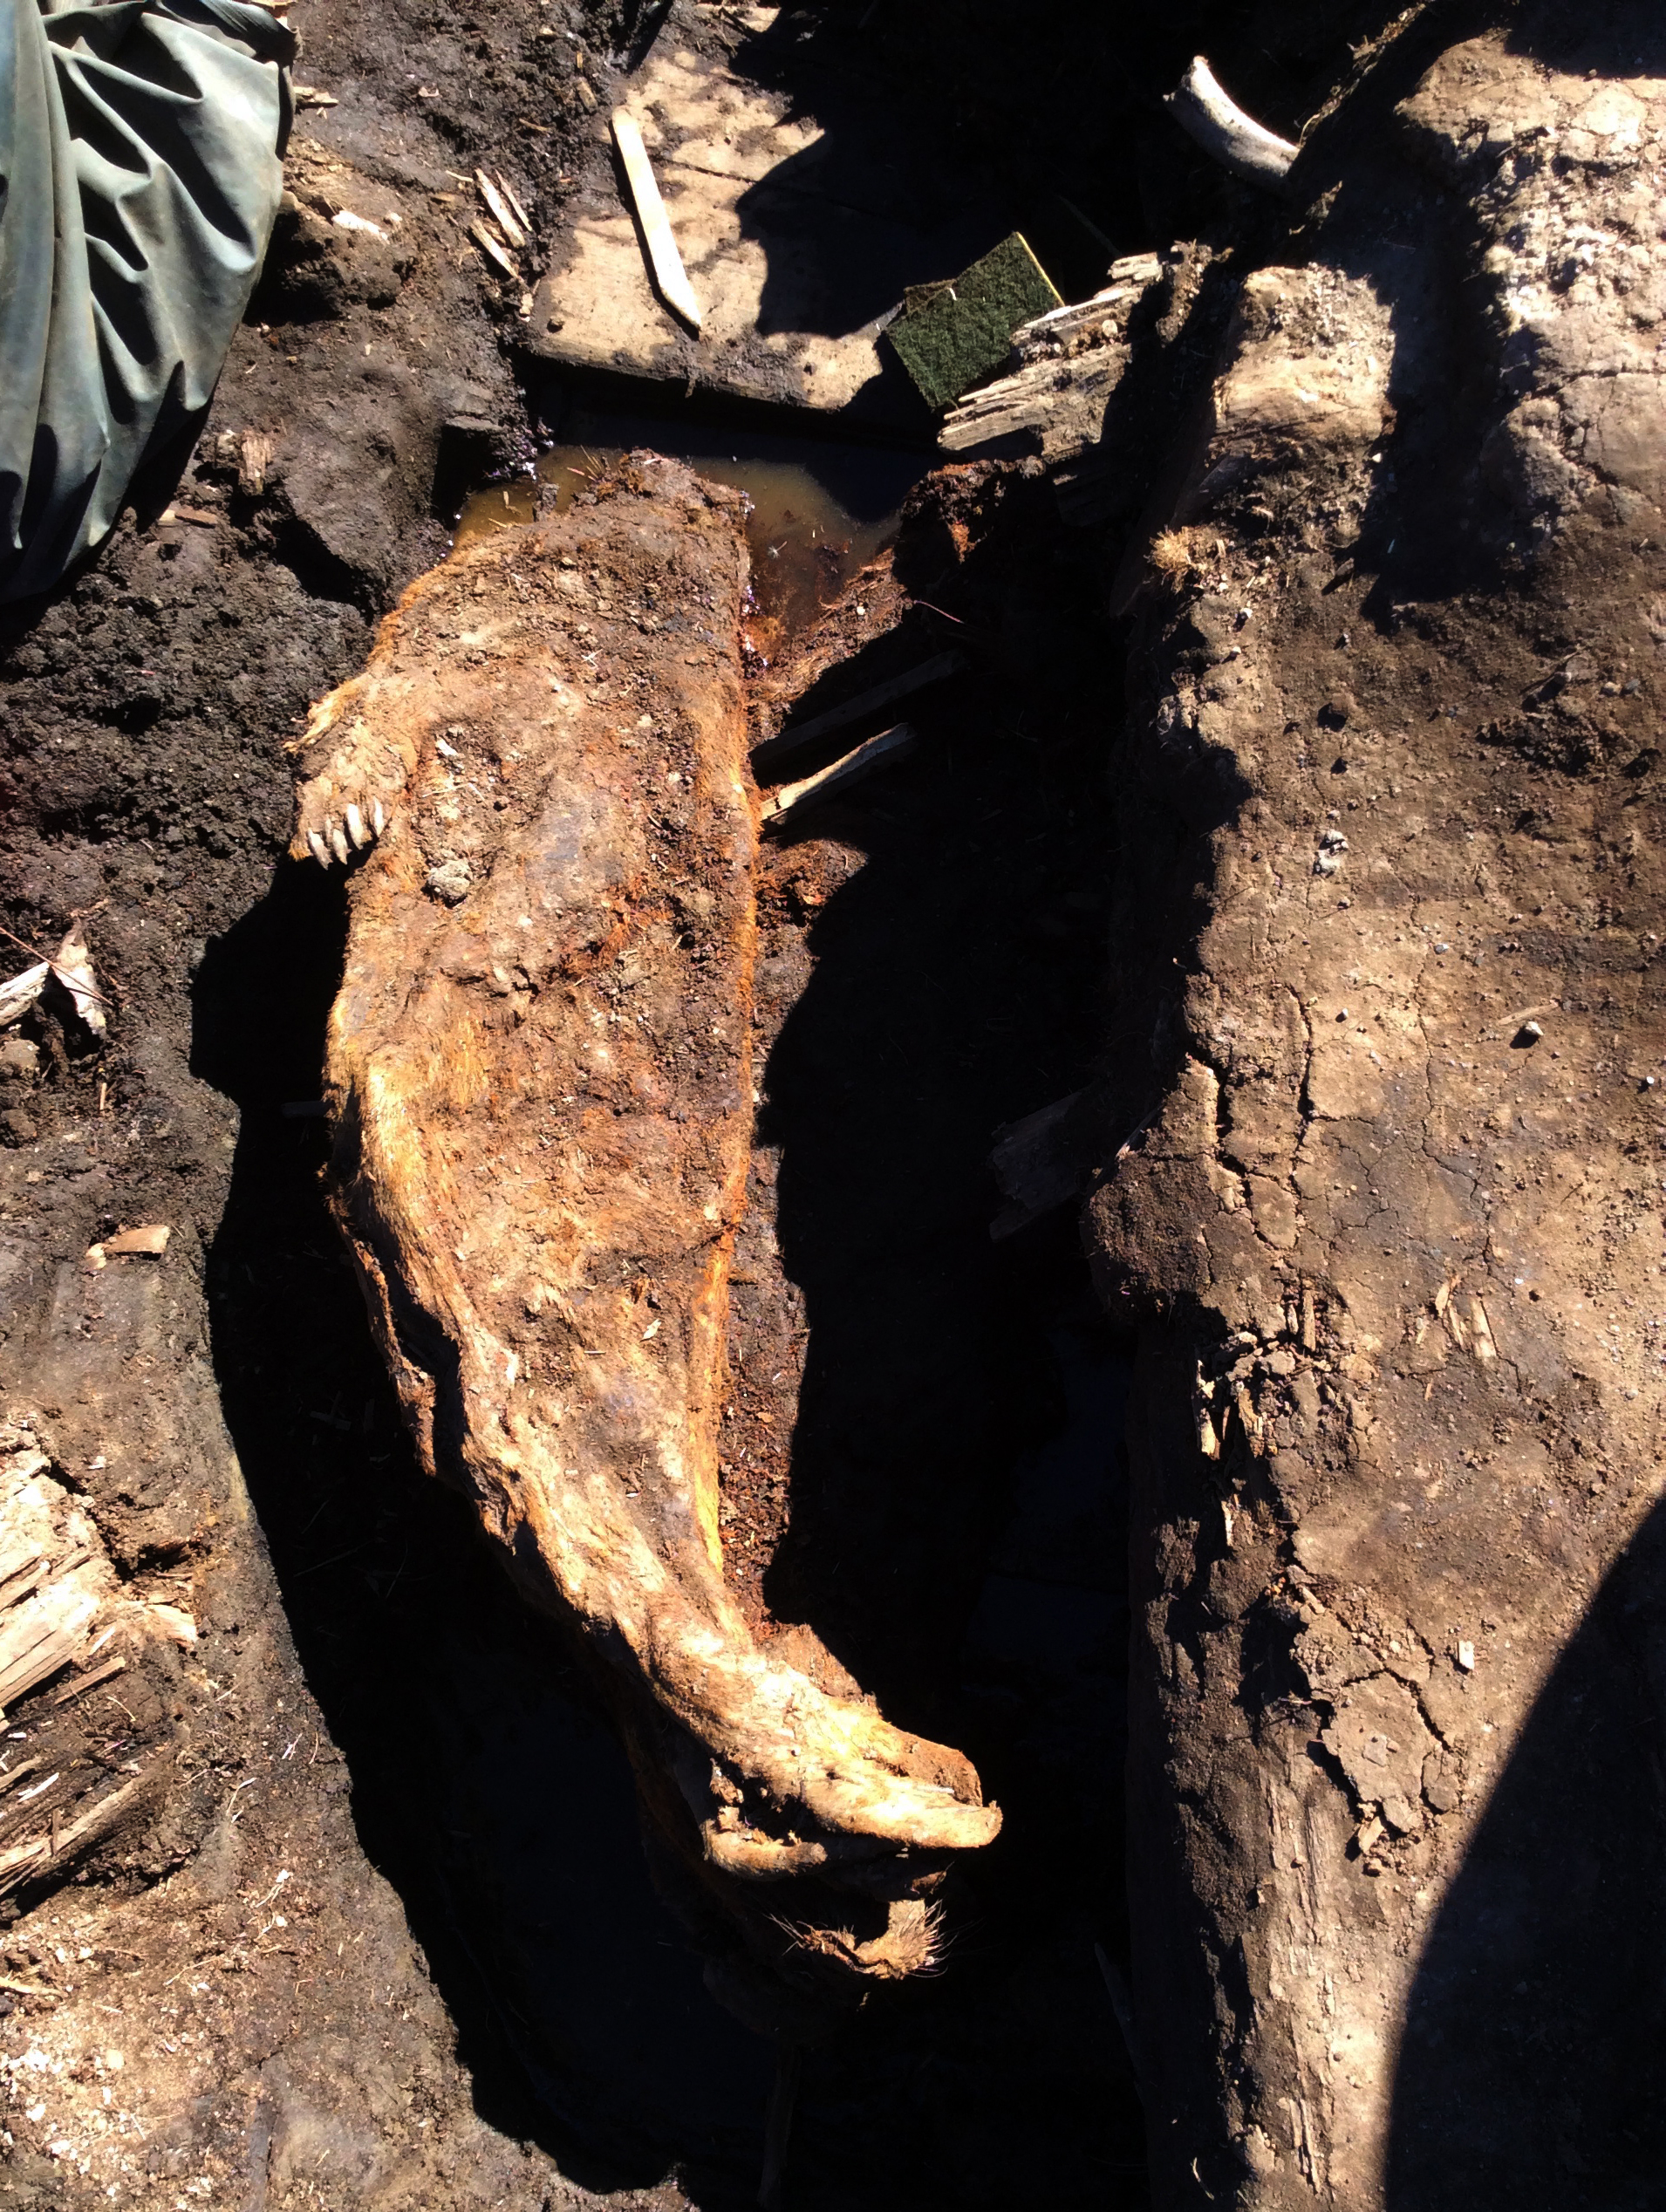 """A mummified seal dubbed """"Patou"""" emerges during excavations at an eroding bluff at the Walakpa site southwest of Utqiaġvik last summer. The seal dates back to only the mid-1940s. Still, it and three other seals found in an old ice cellar amounted to a startling find: They are the only mummified seals ever discovered outside of Antarctica's Dry Valley, said Anne Jensen, an Utqiagvik-based archaeologist. The retrieved seal is fully recognizable, with its fur and claws still intact. """"It's essentially freeze-dried,"""" she said. (UIC Science)"""